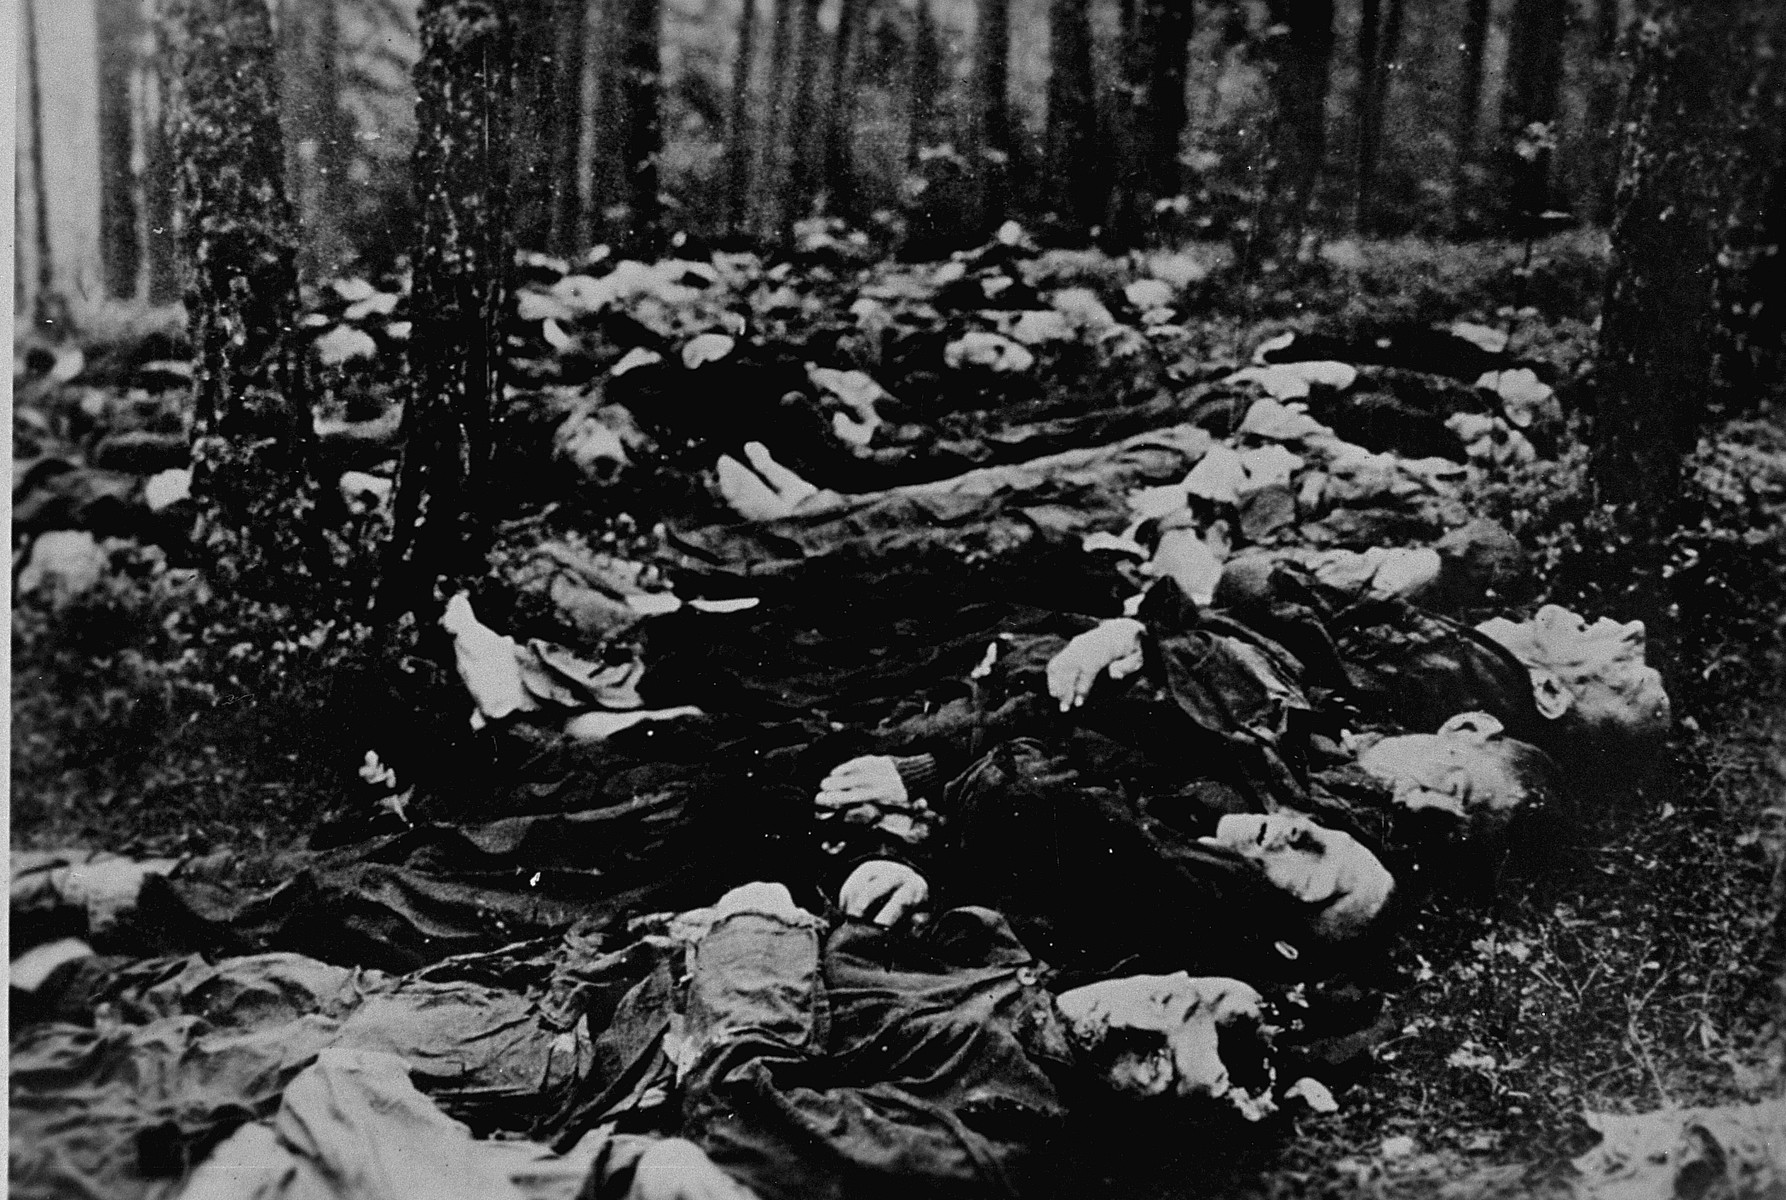 Corpses, some of which had lain unburied for weeks, prepared for burial by German civilians.